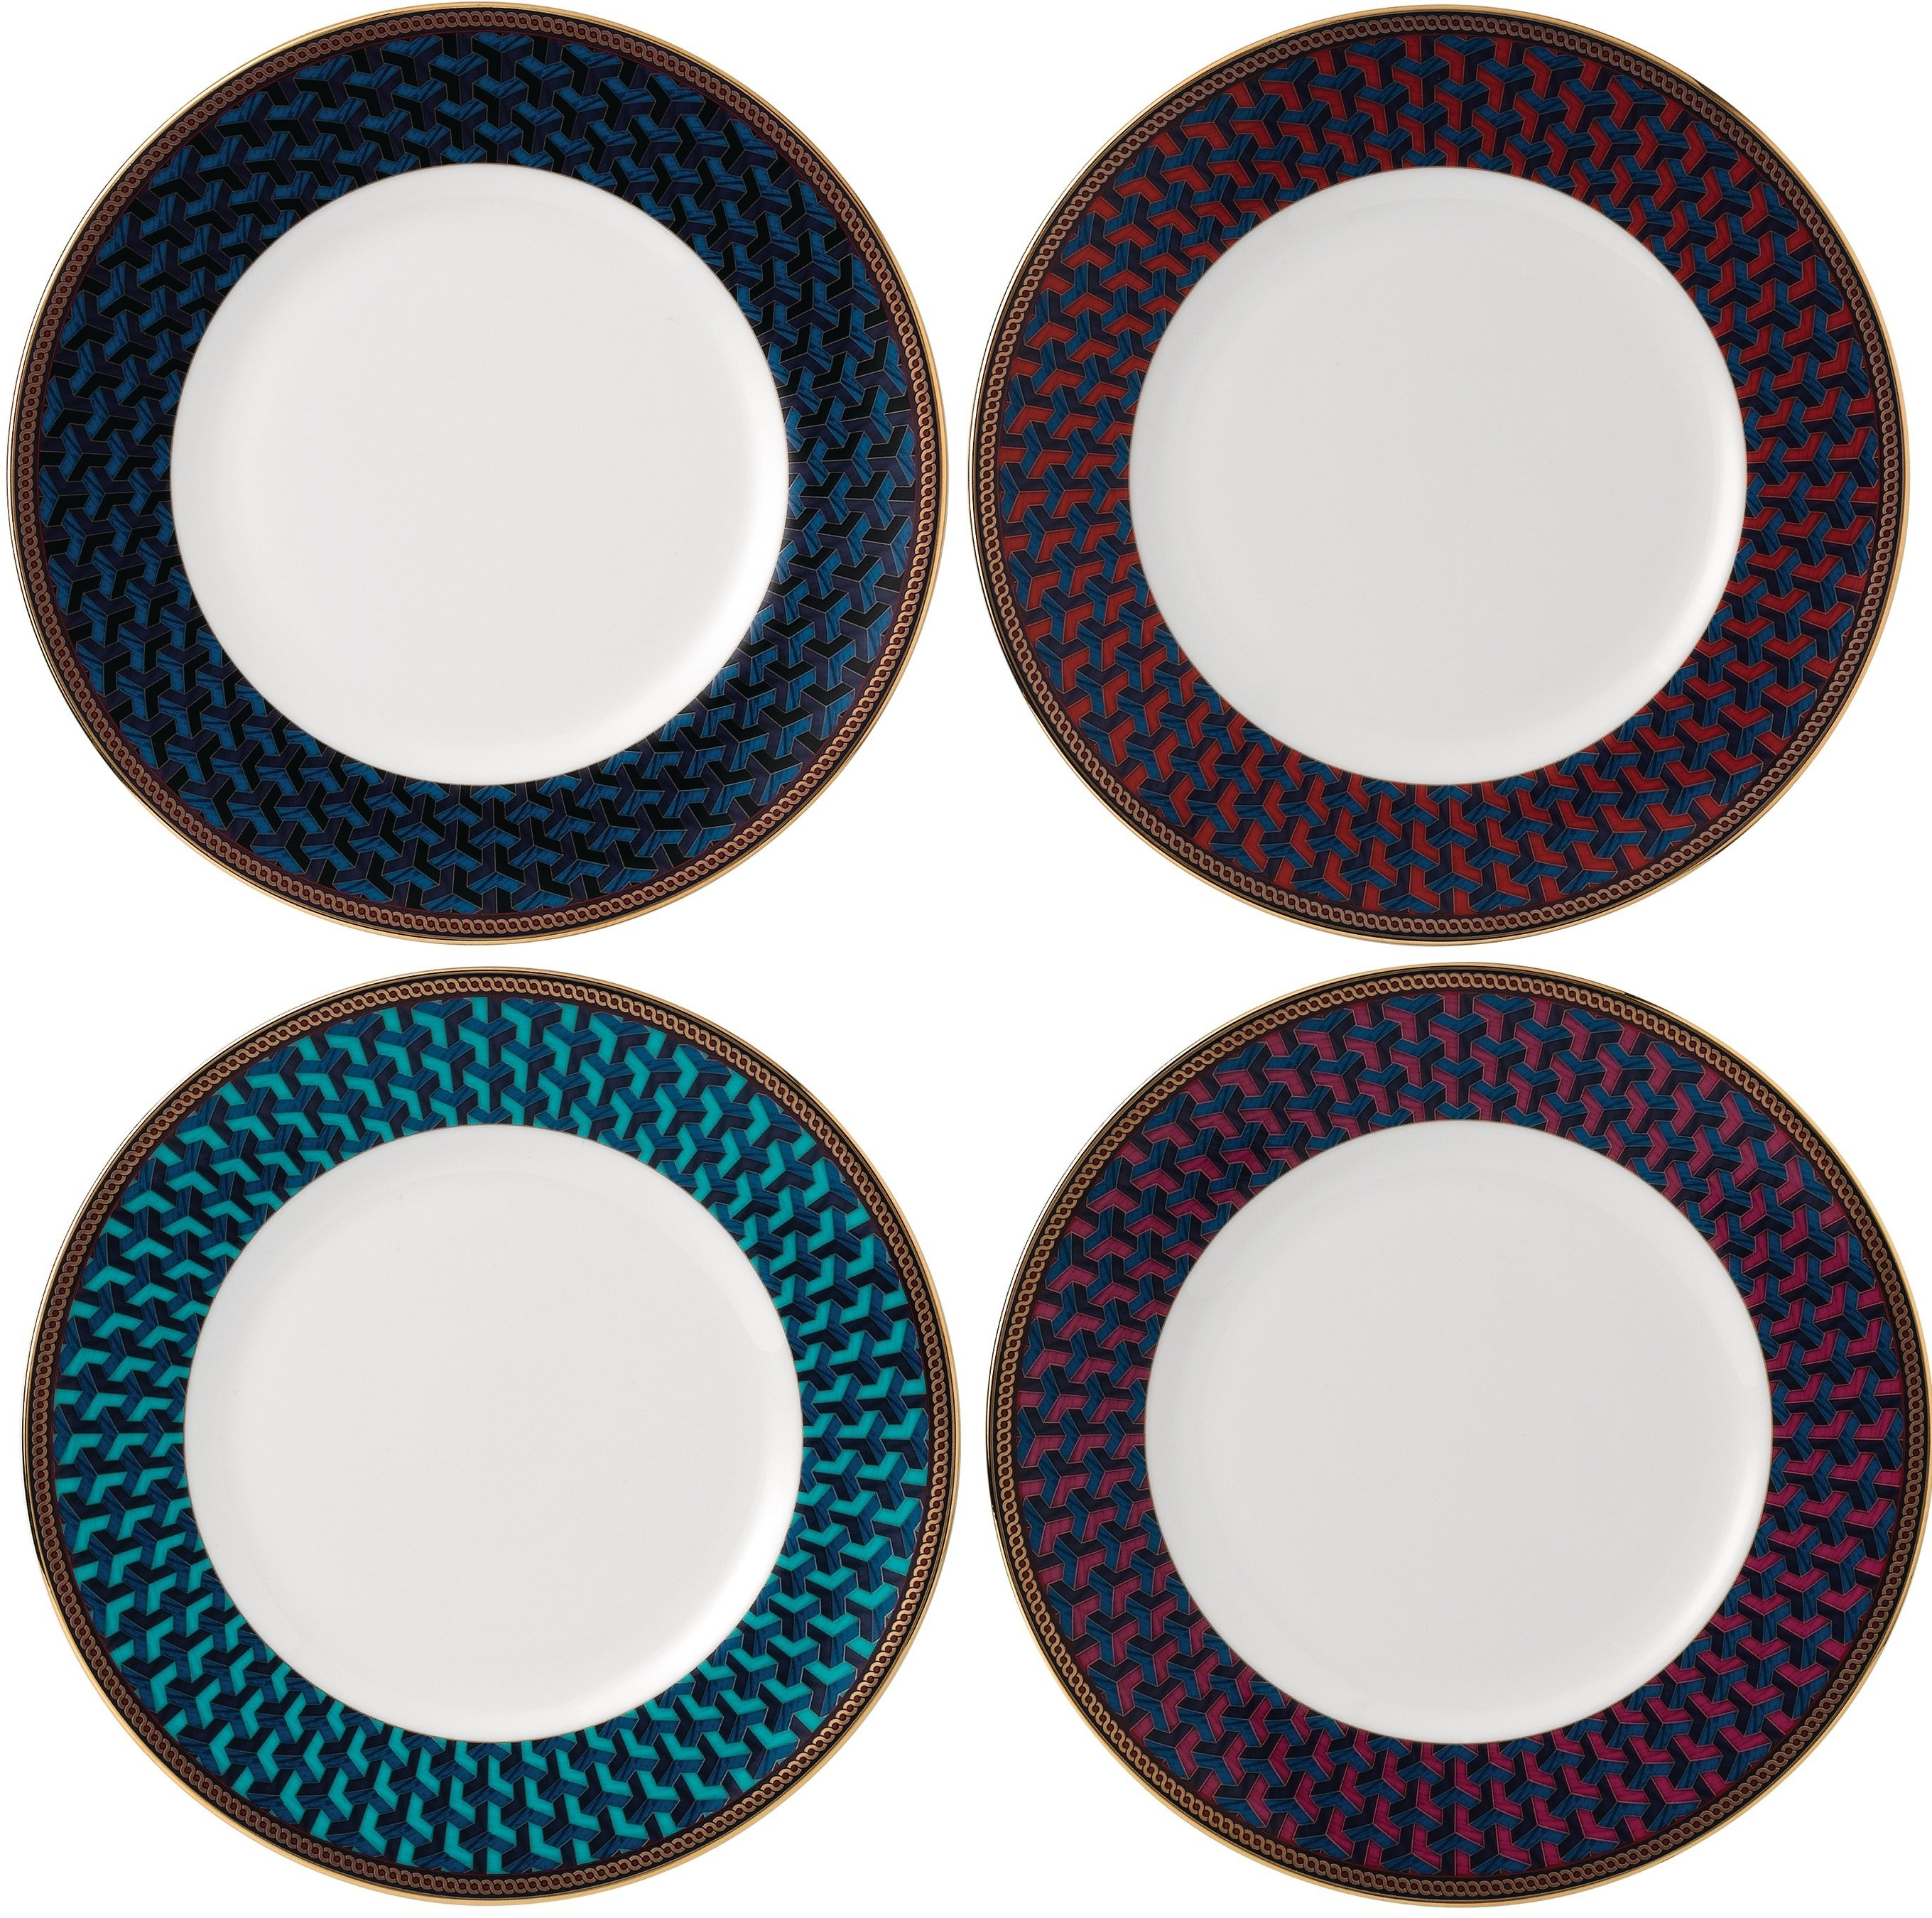 Wedgwood Byzance set of 4 breakfast plates